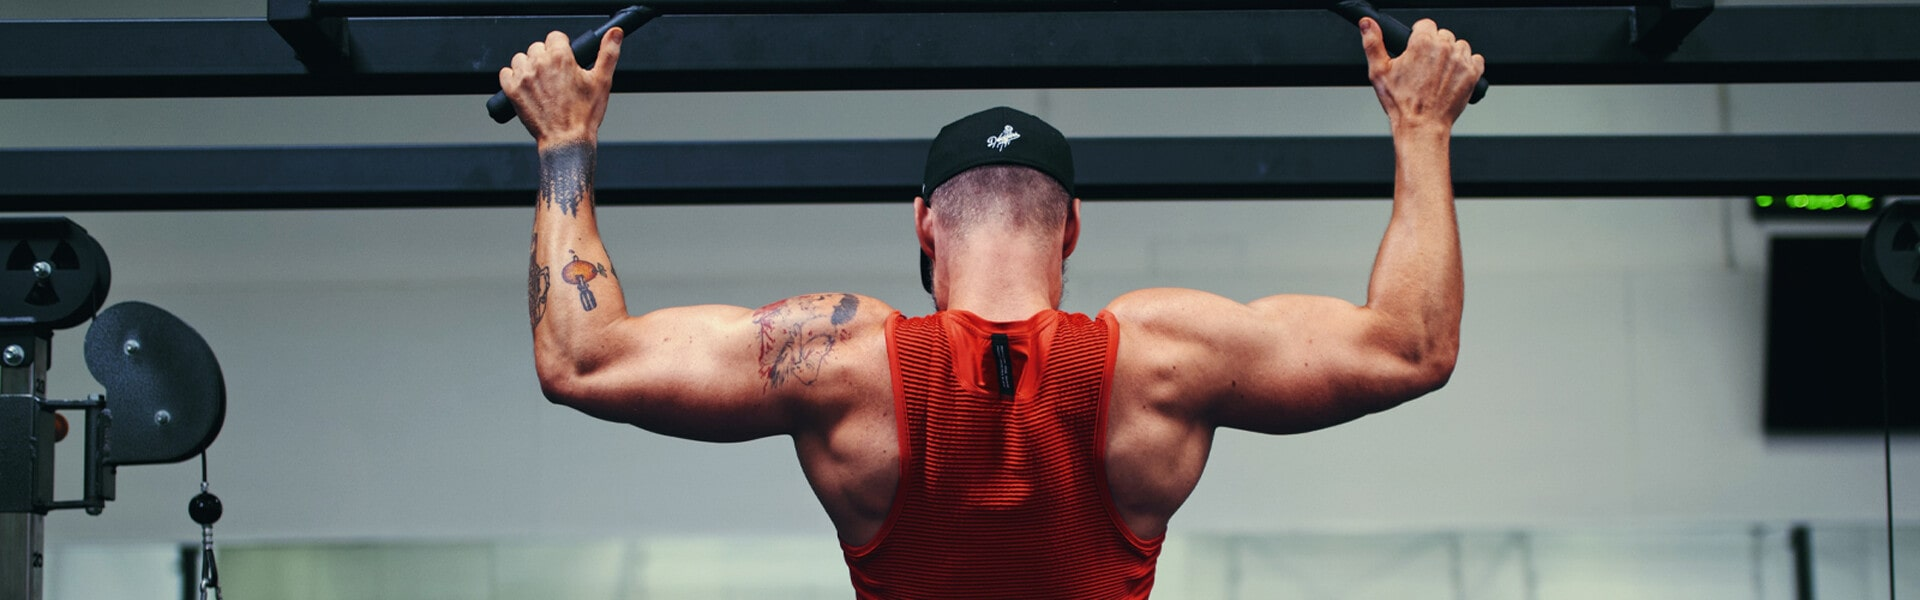 a tattooed man works out in a gym